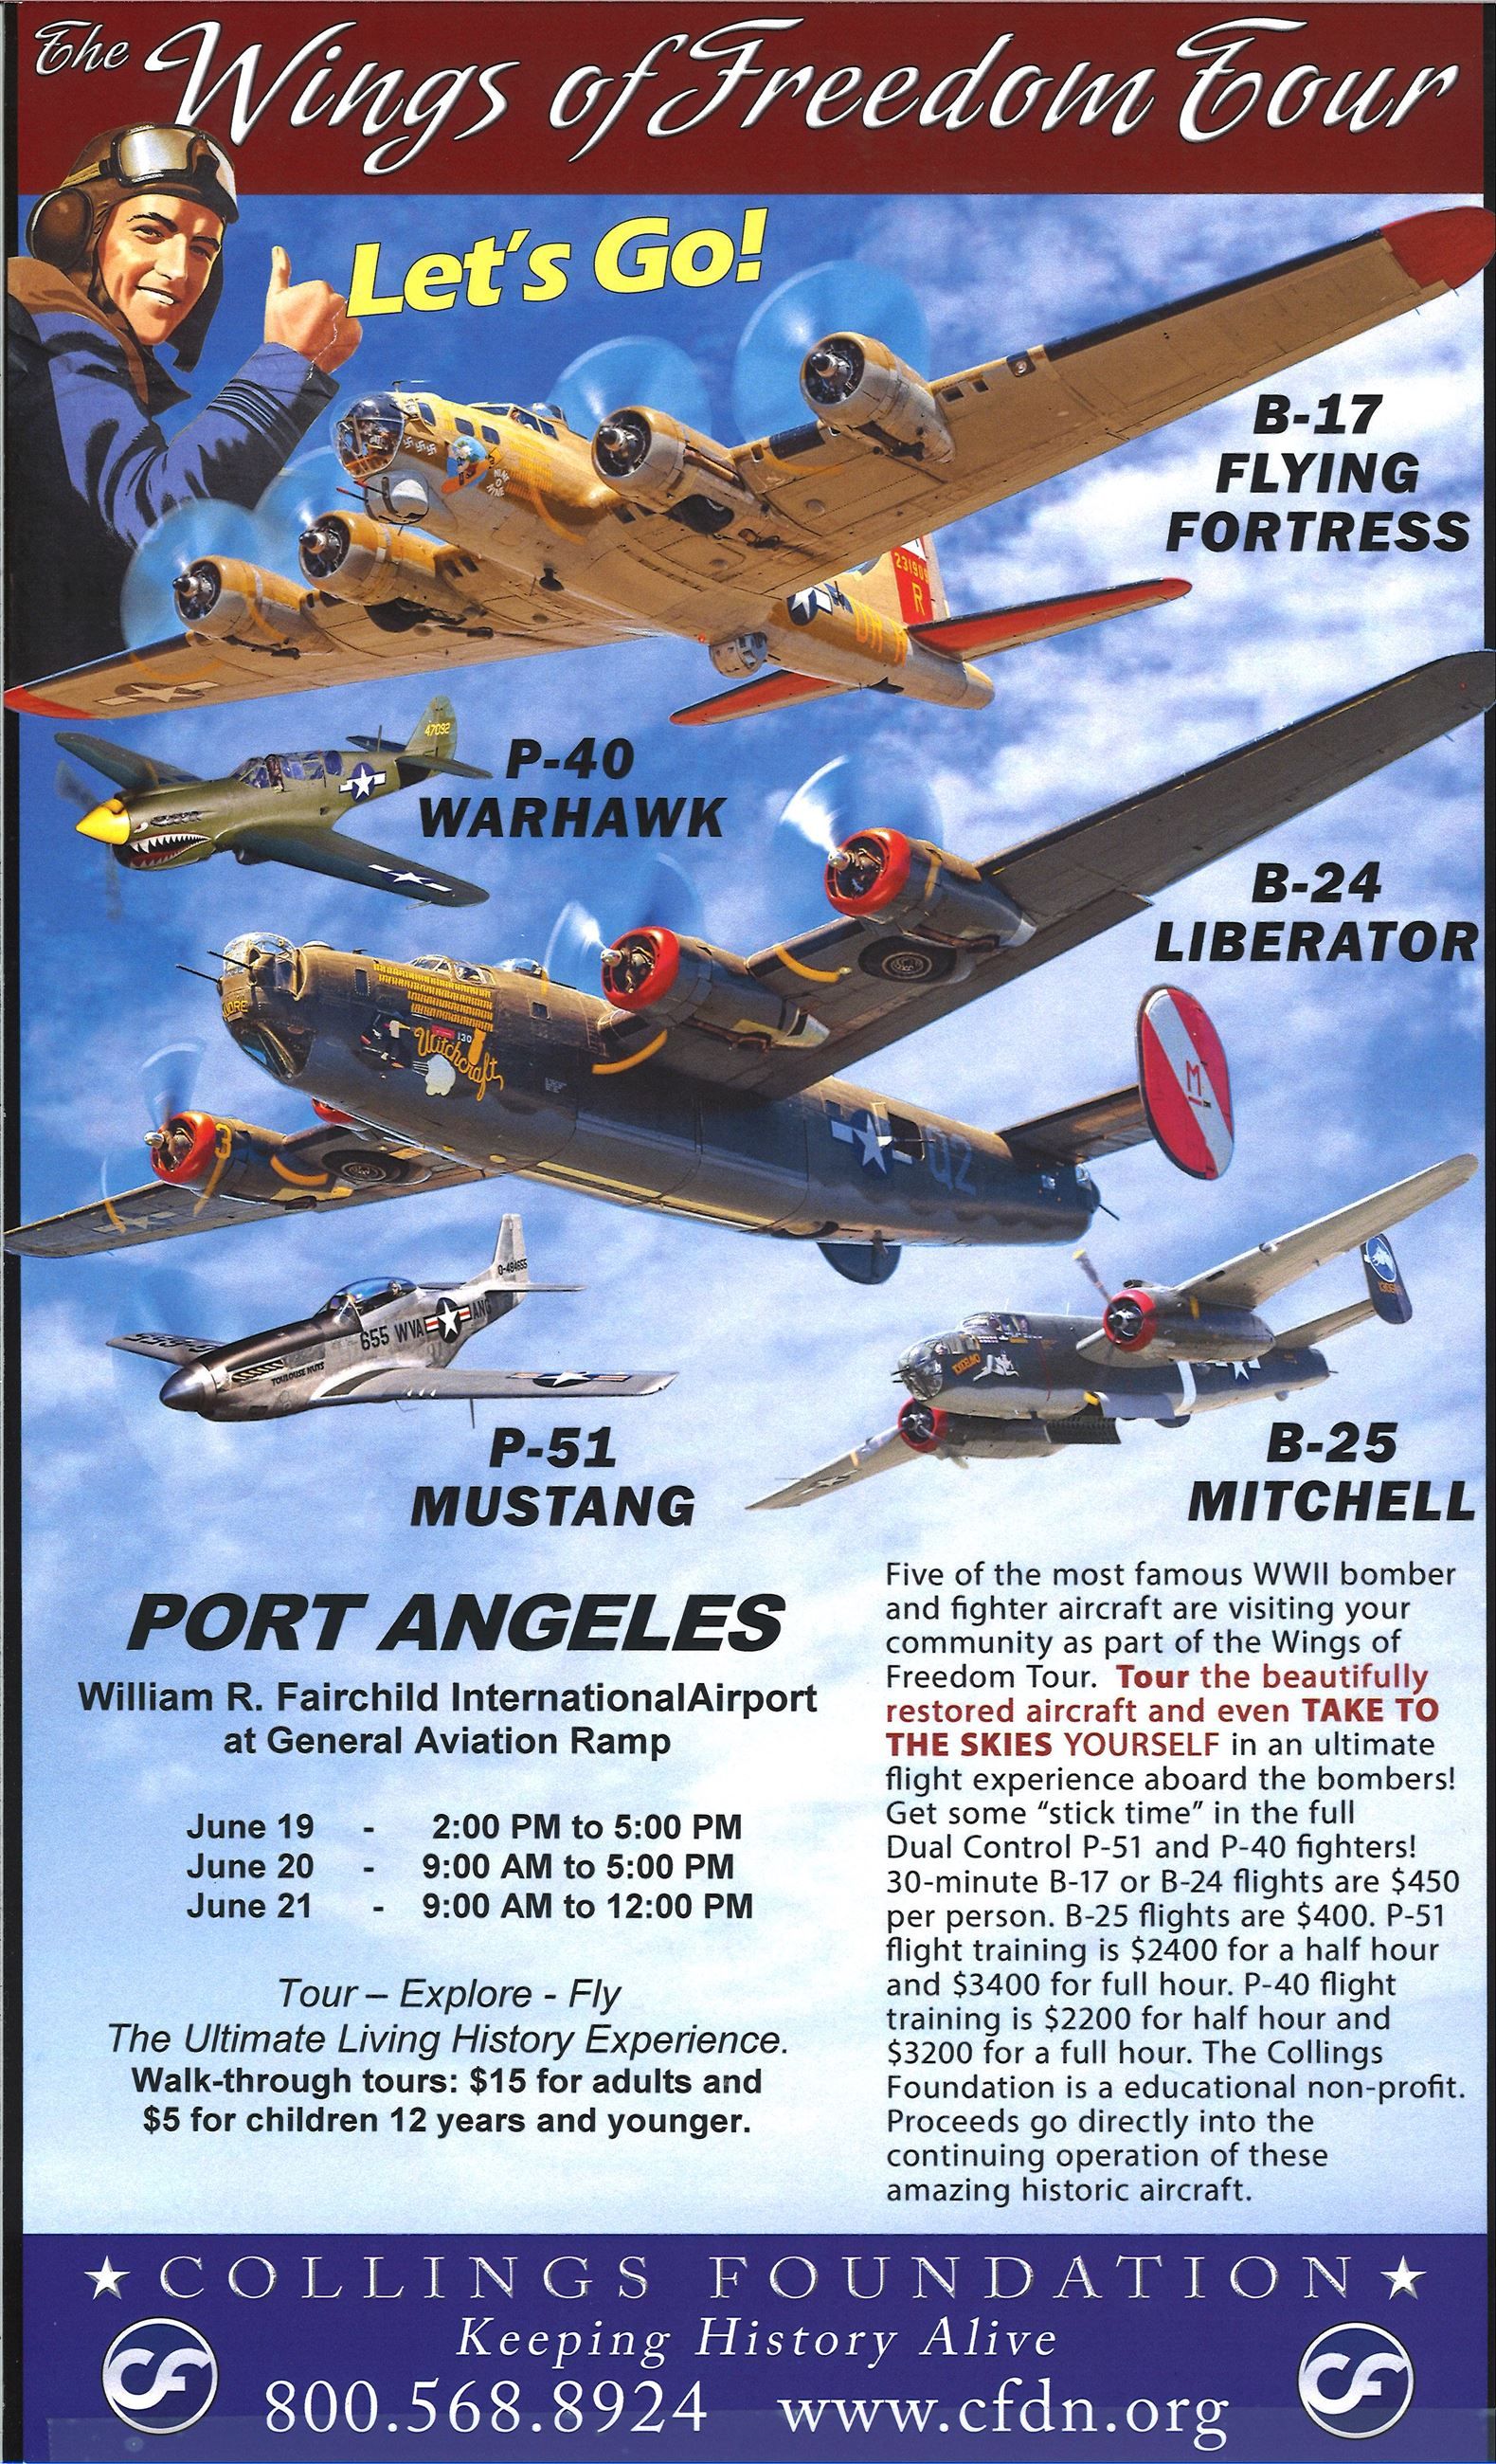 2019 Wings of Freedom Flyer